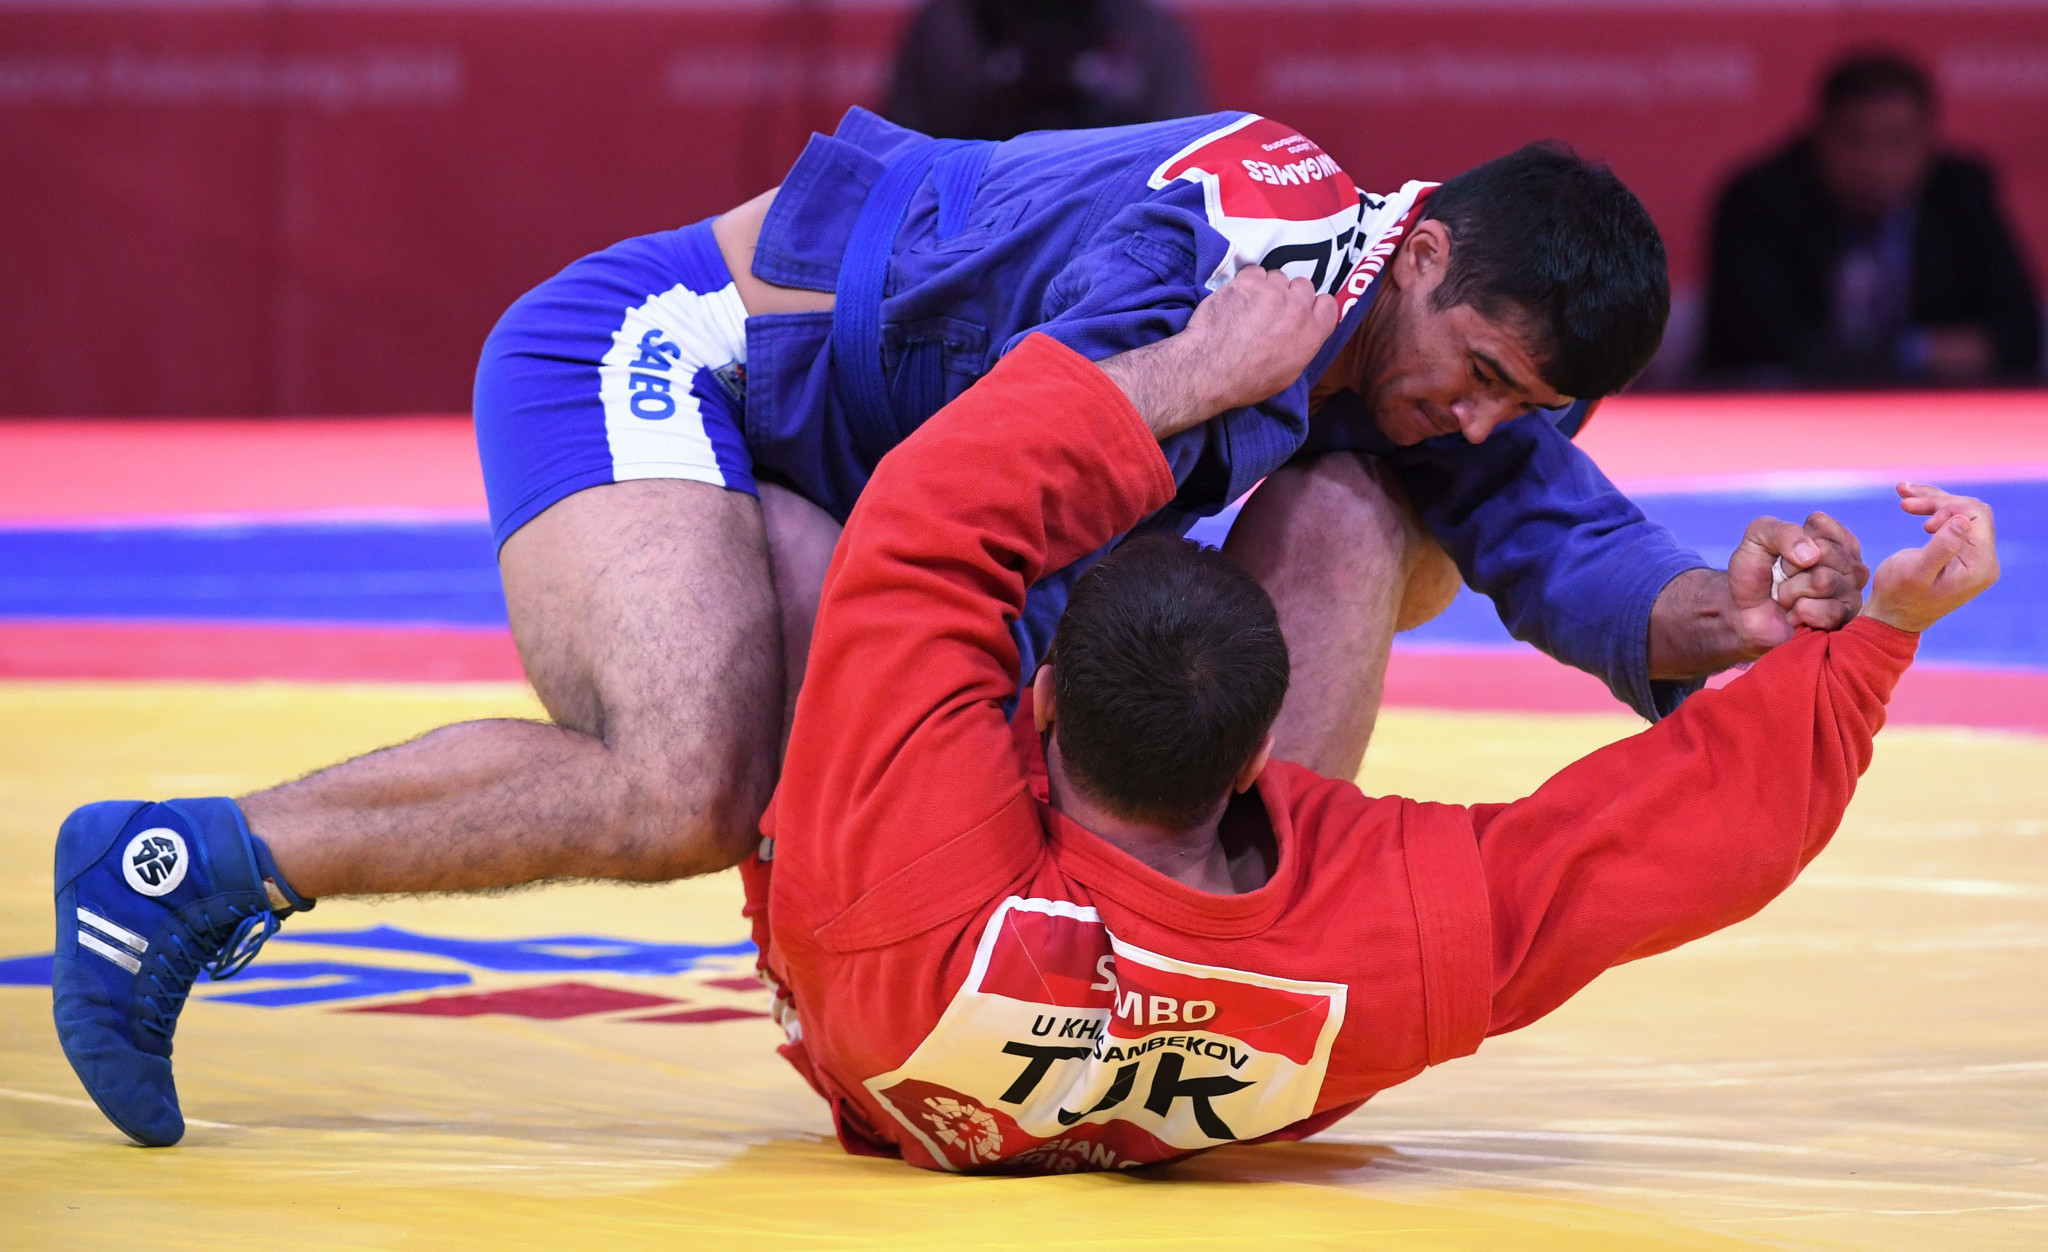 Decision on 2020 World Sambo Championships to be made by end of September